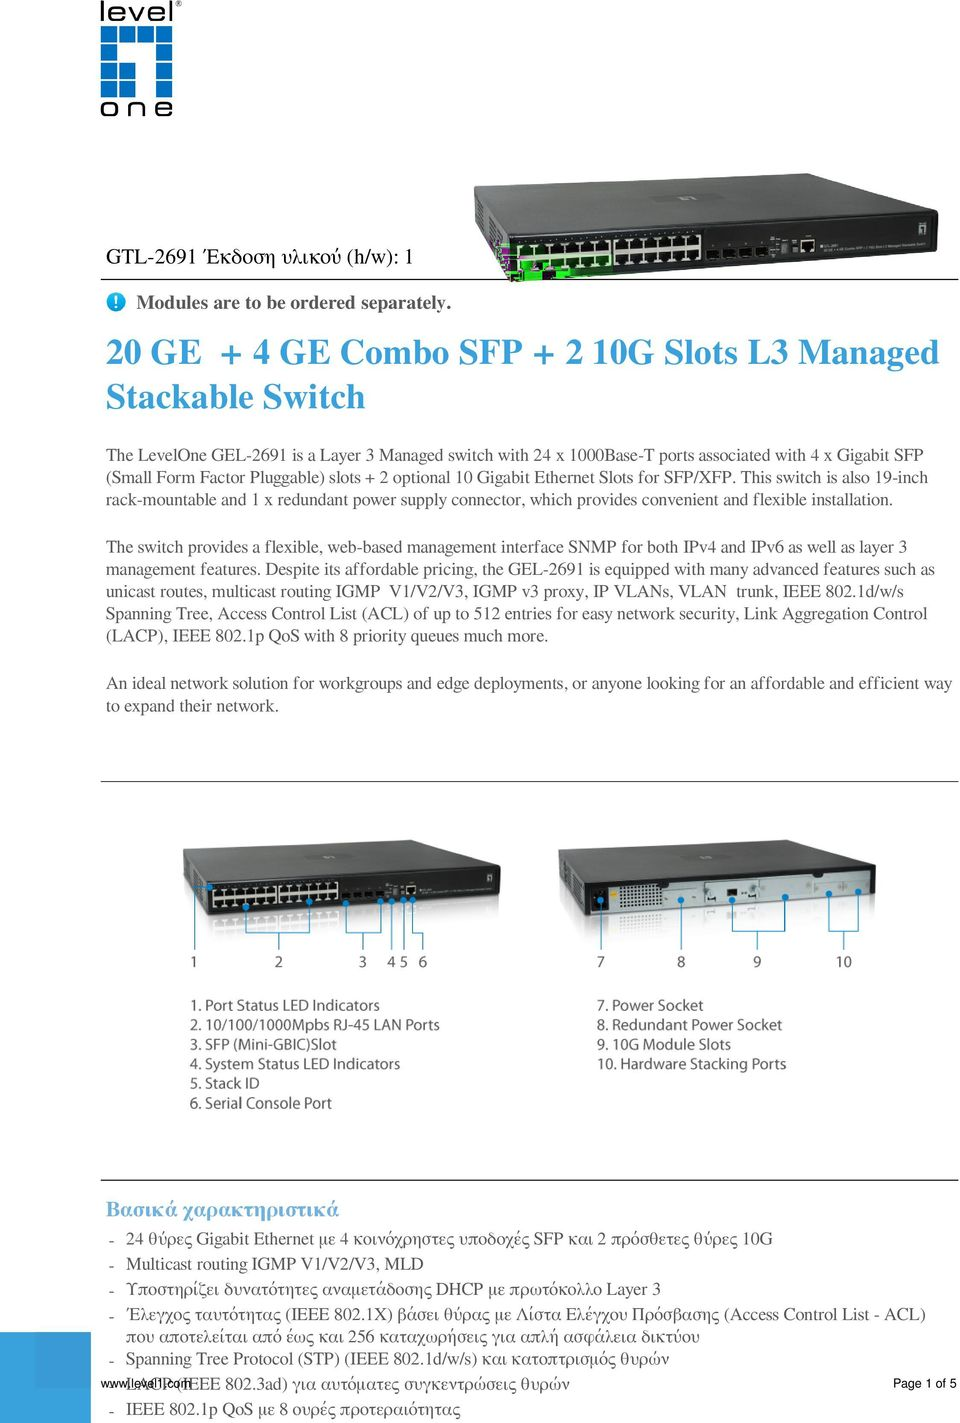 Pluggable) slots + 2 optional 10 Gigabit Ethernet Slots for SFP/XFP.